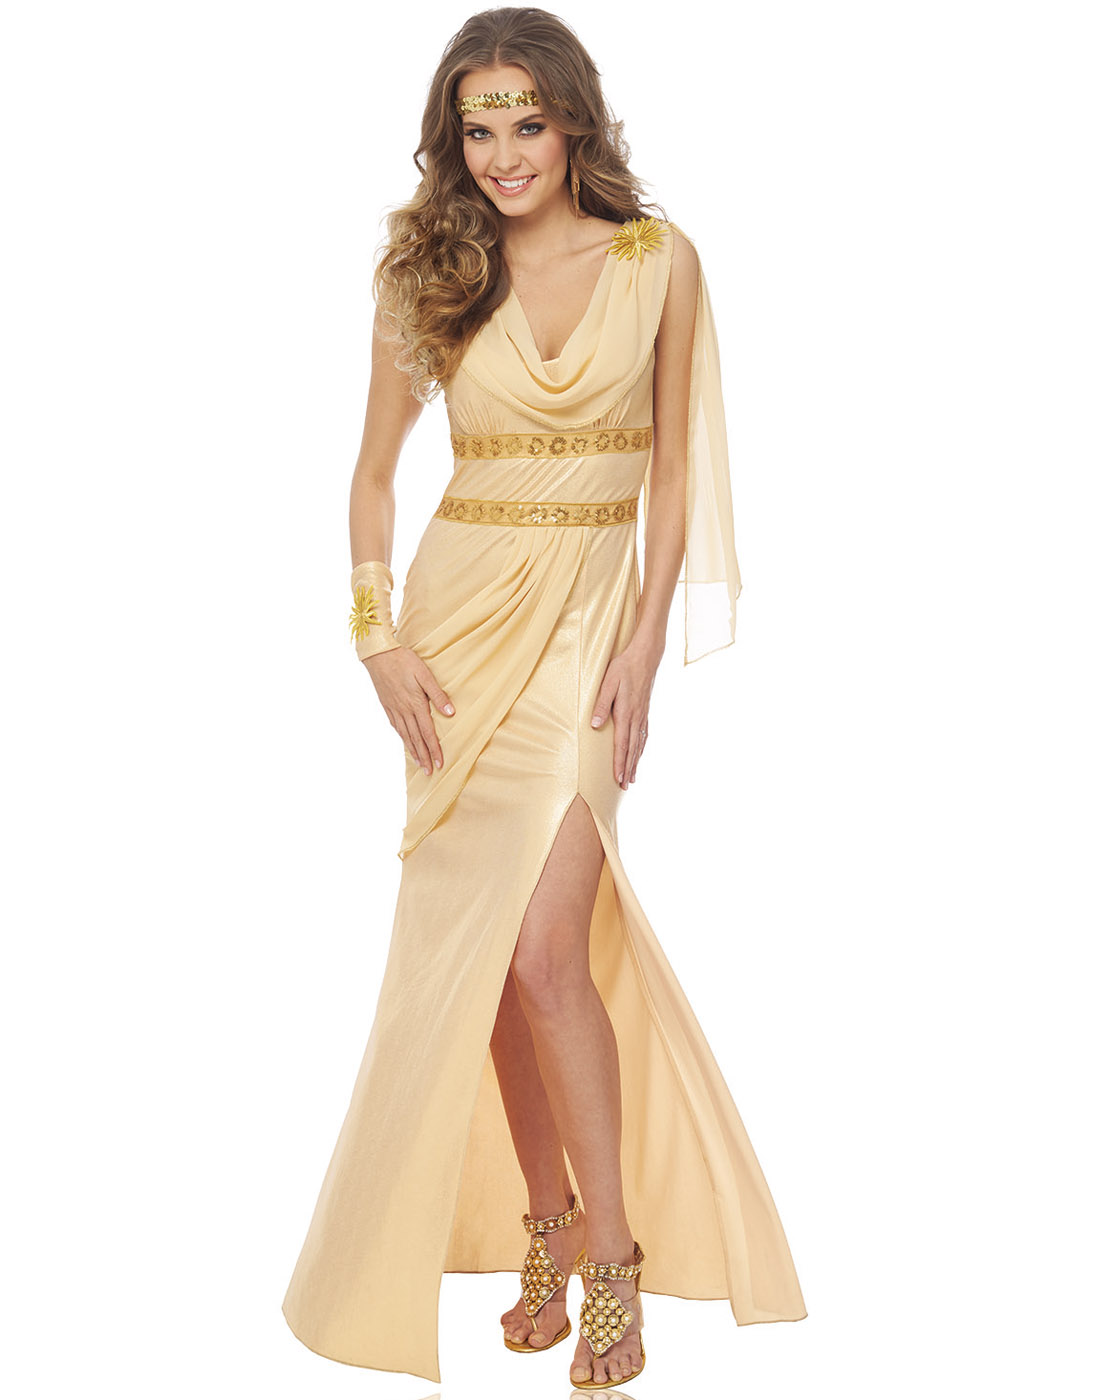 sun goddess womens roman greek gold toga adult halloween costume | ebay